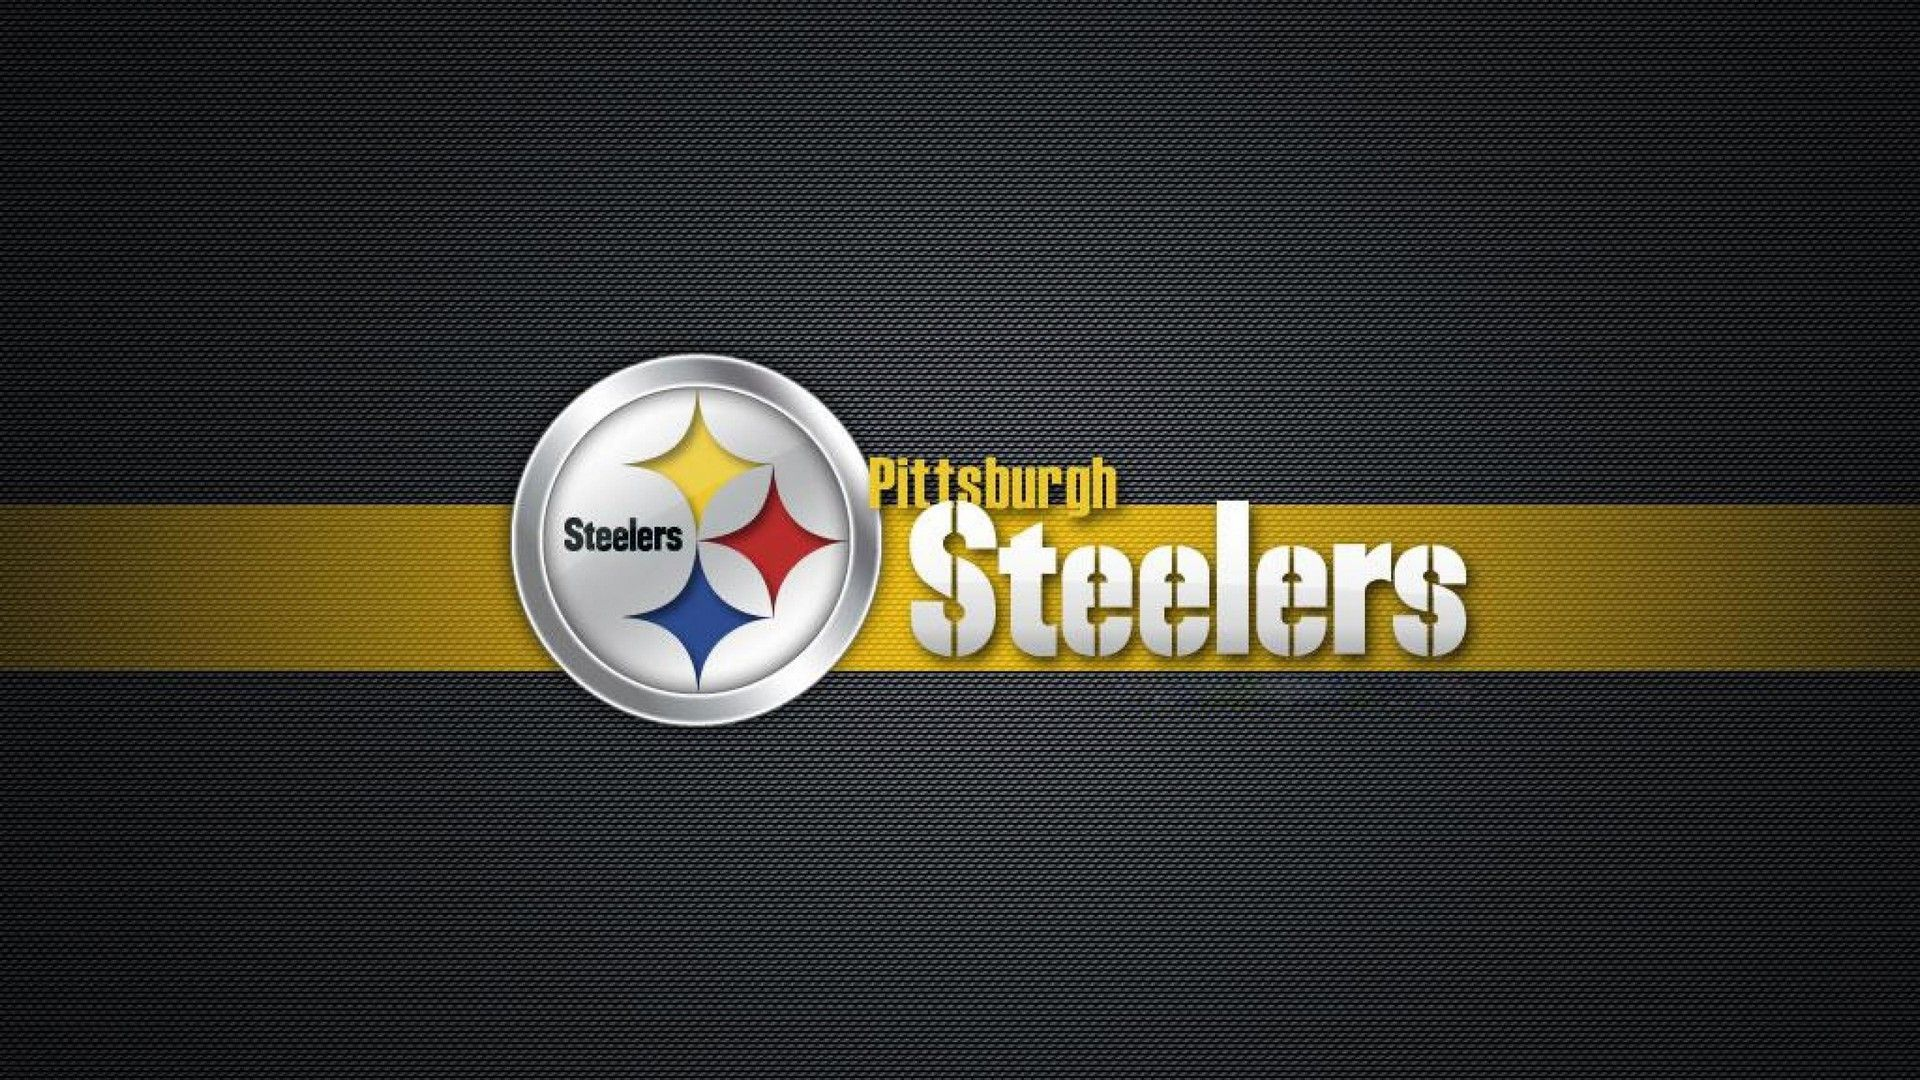 Steelers Logo Mac Backgrounds Pittsburgh steelers logo